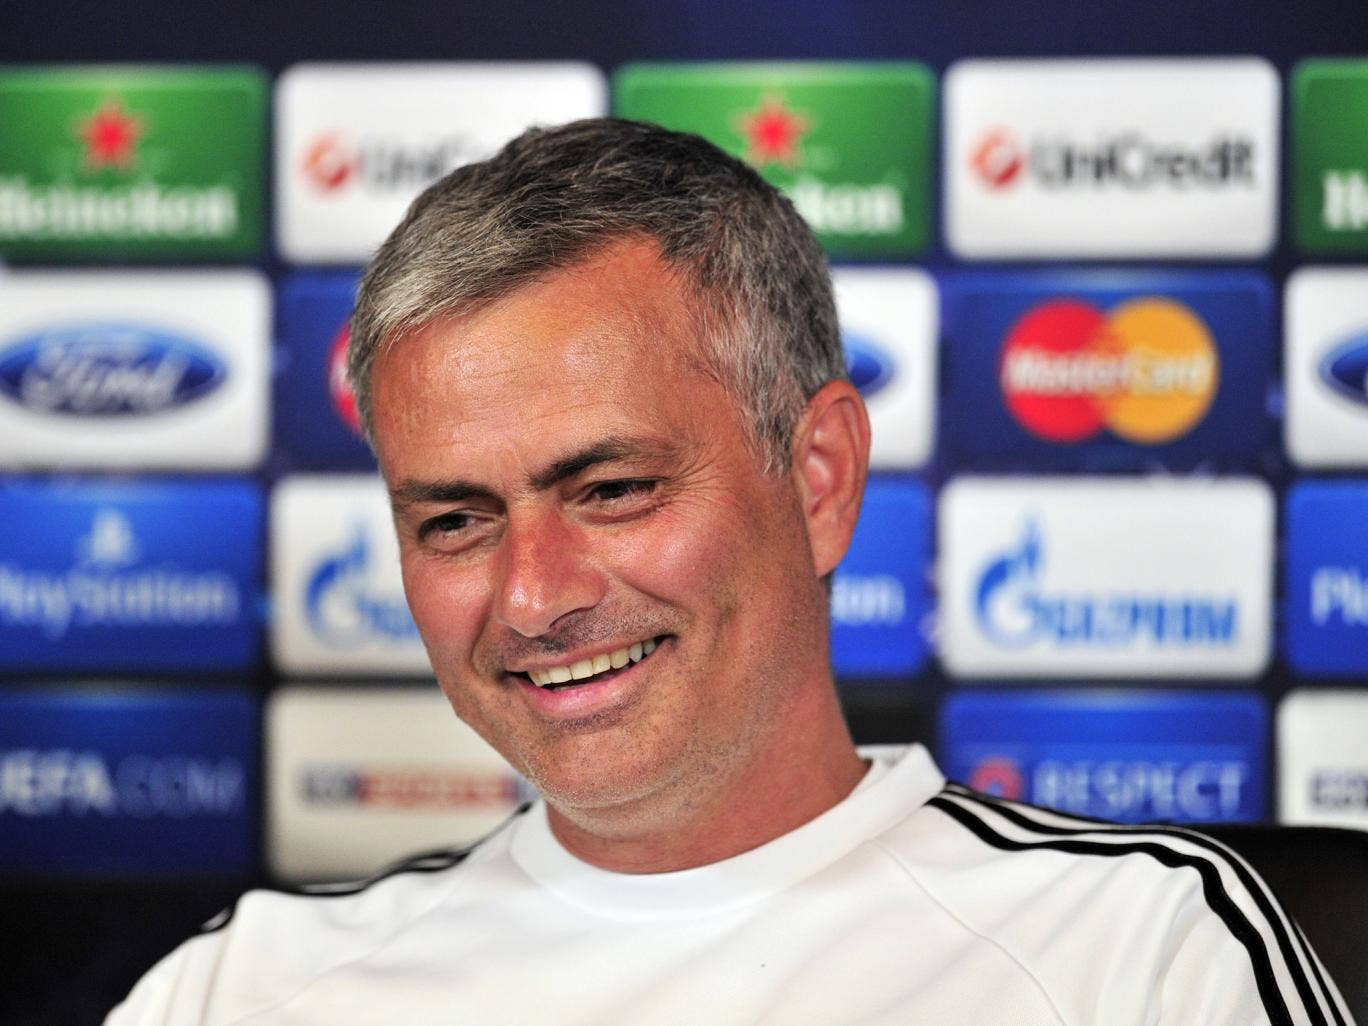 Jose Mourinho speaks during a Chelsea press conference